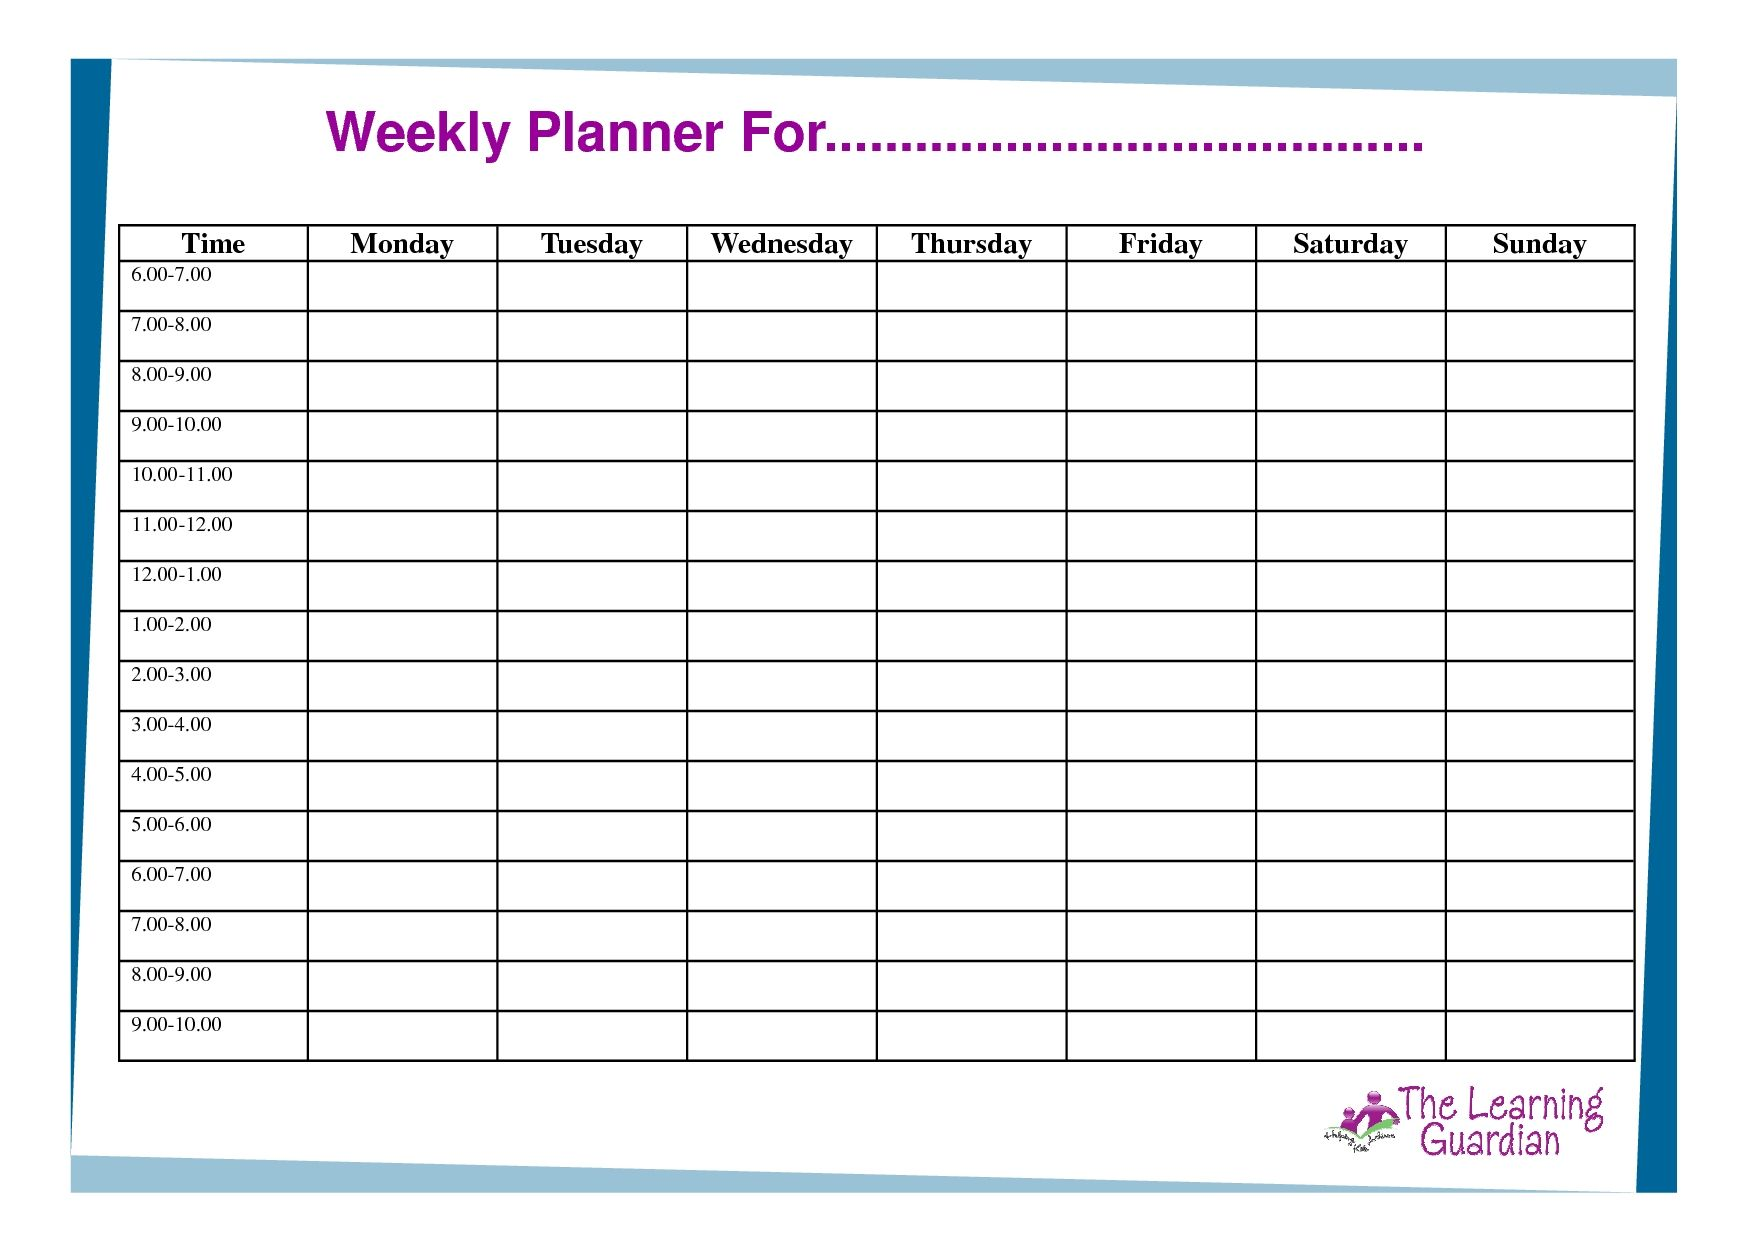 Free Printable Weekly Calendar Templates Planner For Time Incredible 7 Day Weekly Planner